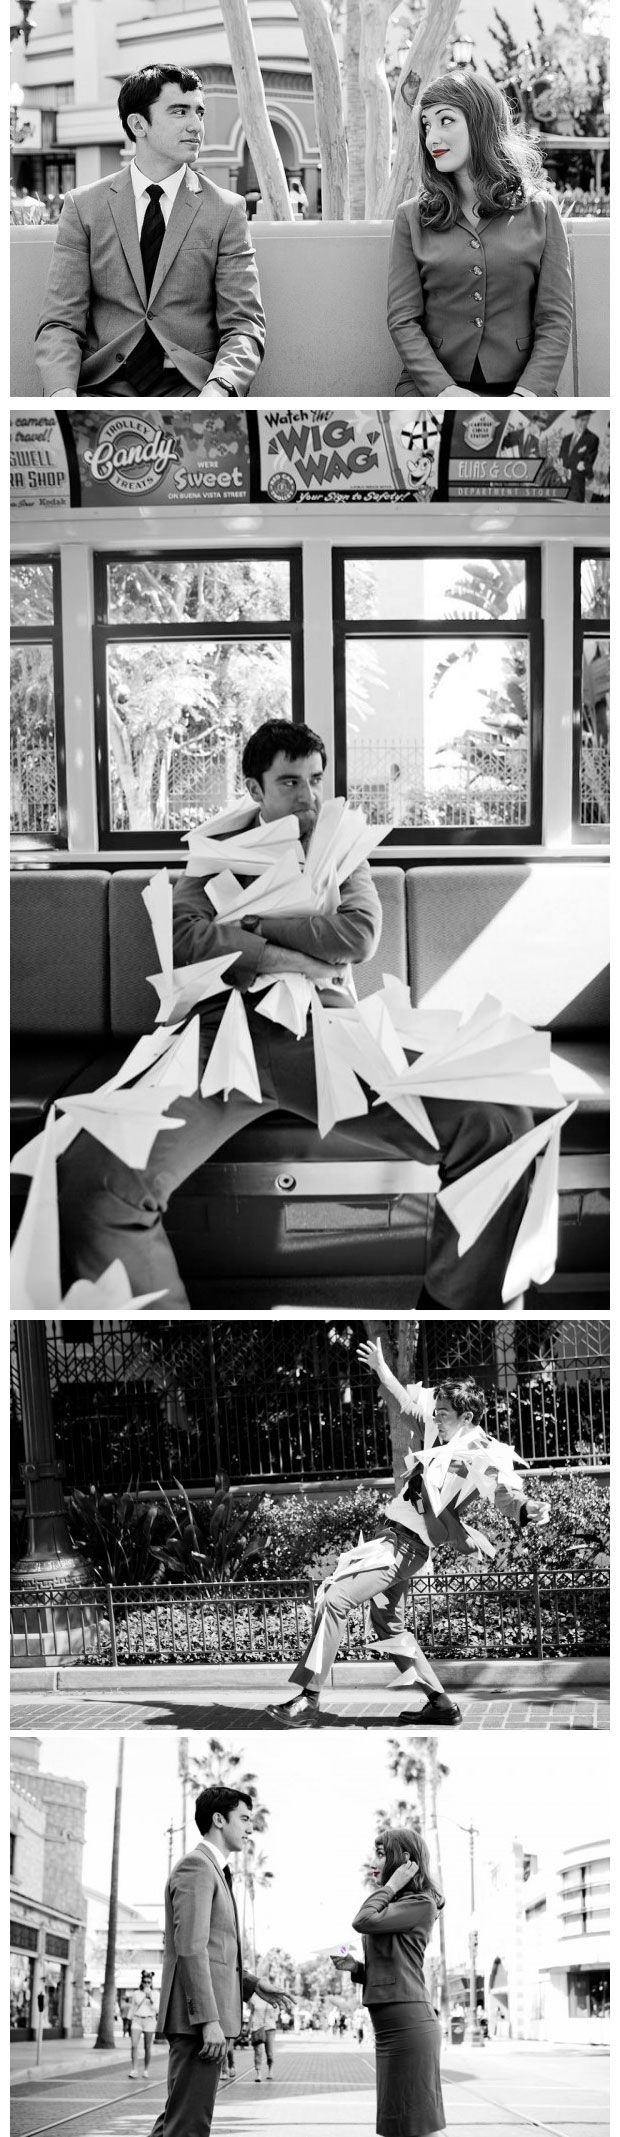 Enchanting Paperman Cosplay  | http://fashionablygeek.com/costumes/enchanting-paperman-cosplay/#more-69238